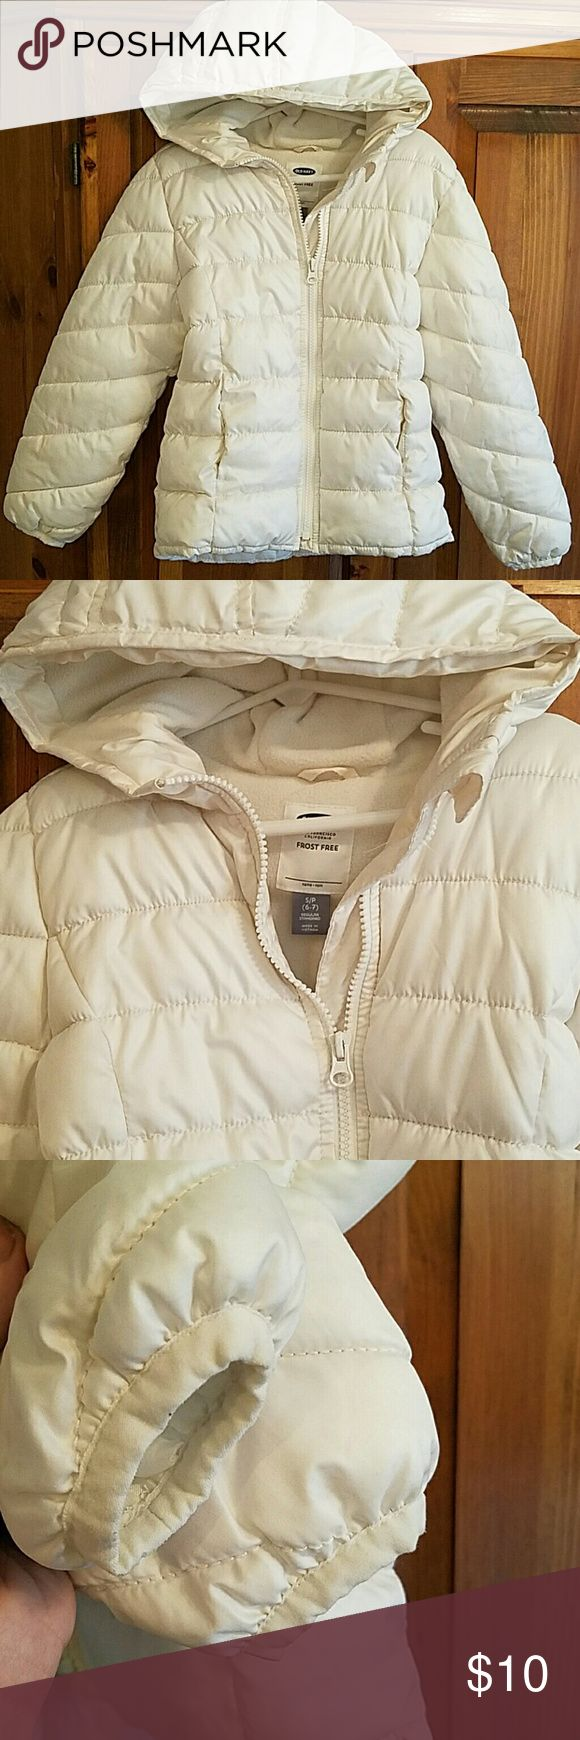 🌟Weekend Special 🌟🌟🌟Old navy white puff jacket Fleece lined zip up hooded puff jacket with 2 front pockets. No stains. Maybe worn once. Perfect condition. Size 6/7 Old Navy Jackets & Coats Puffers